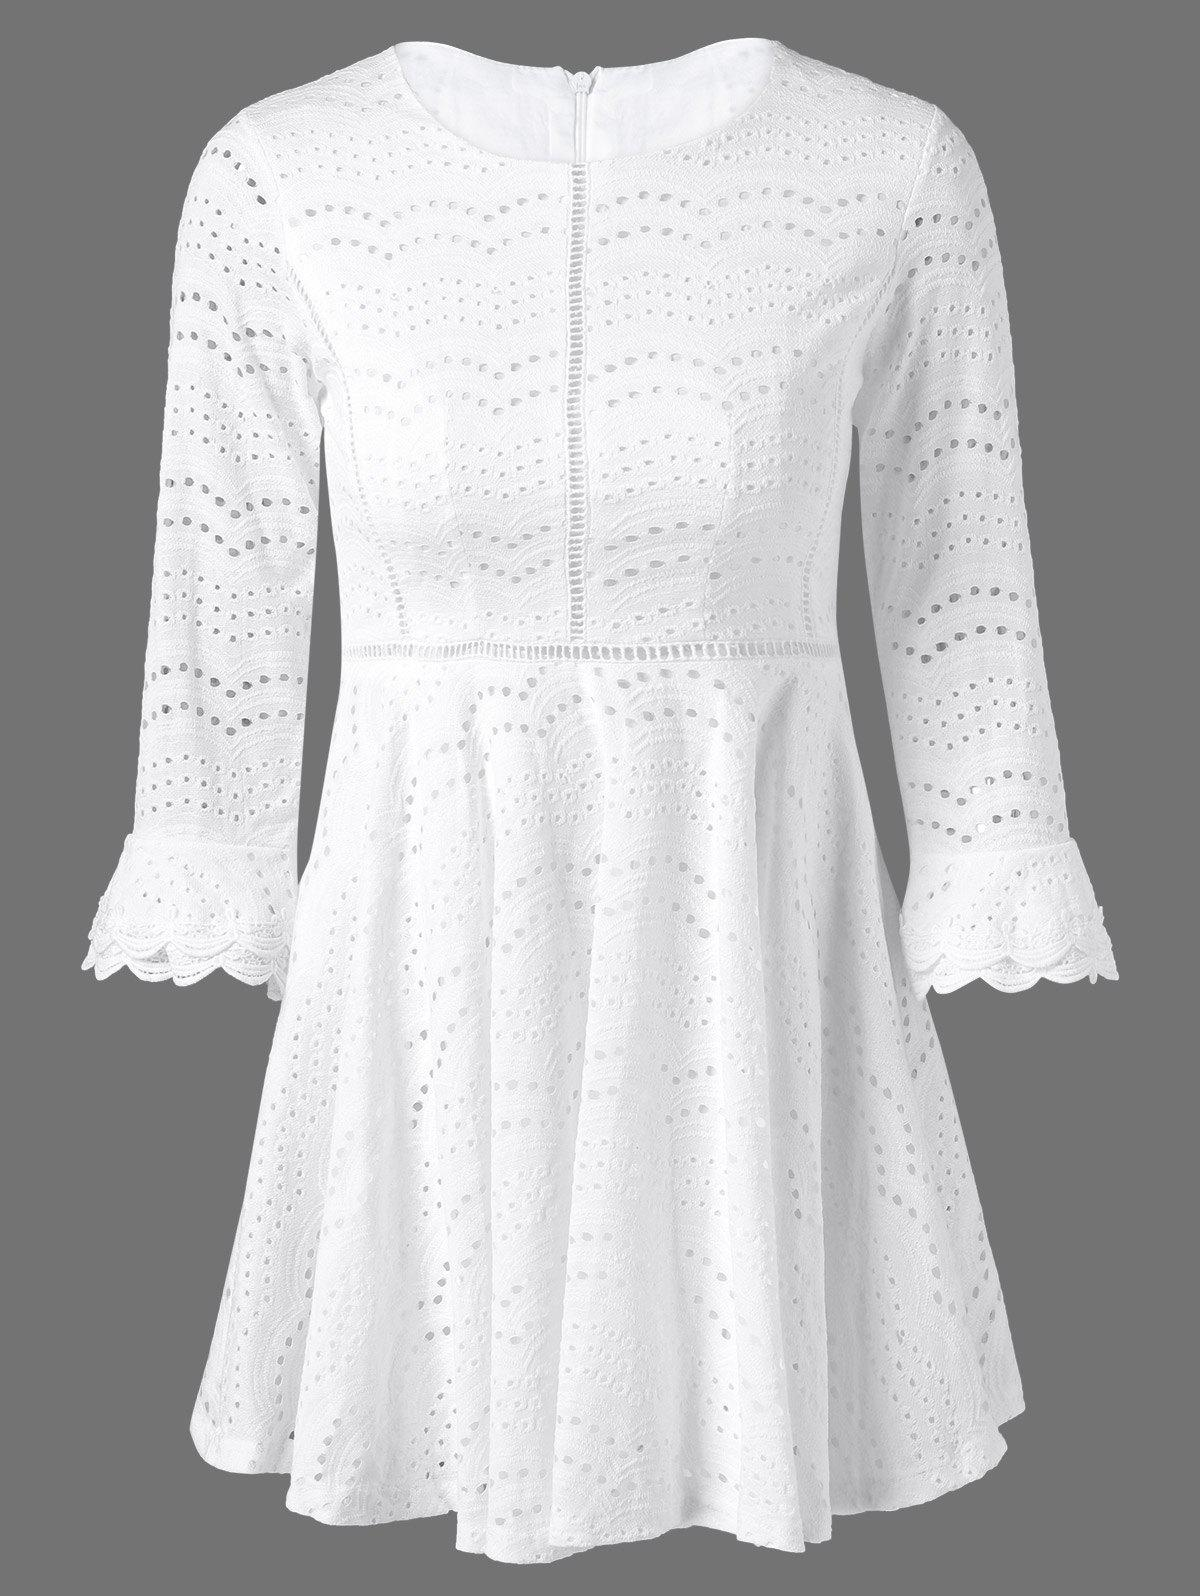 Bell Sleeve Sheer Lace Fit and Flare Dress, White